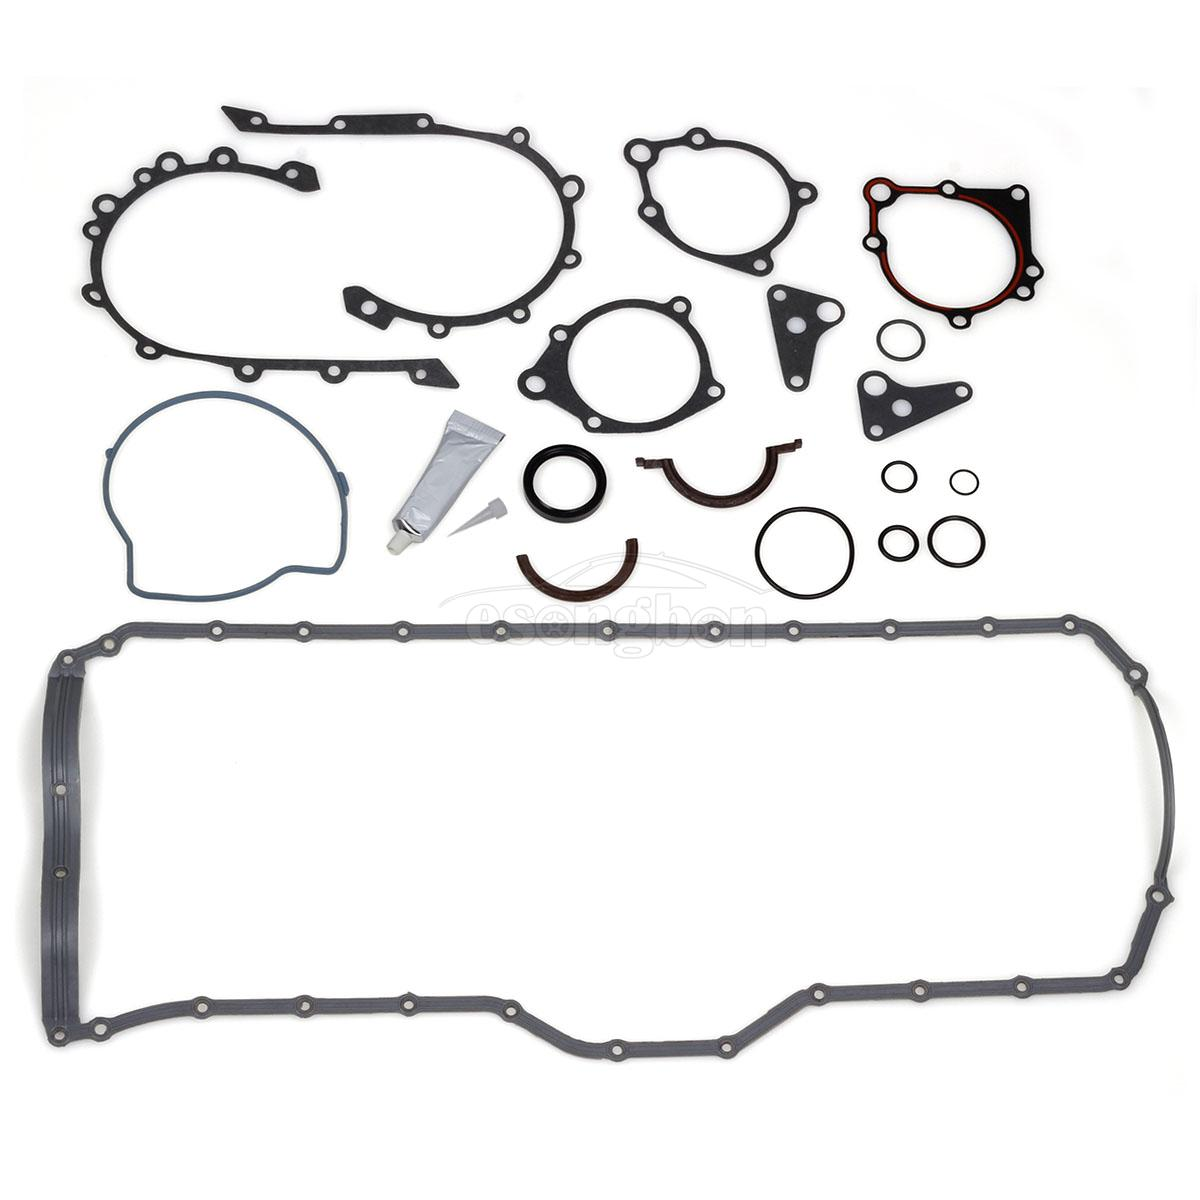 Full Gasket Set Fit for Jeep Grand Cherokee Comanche